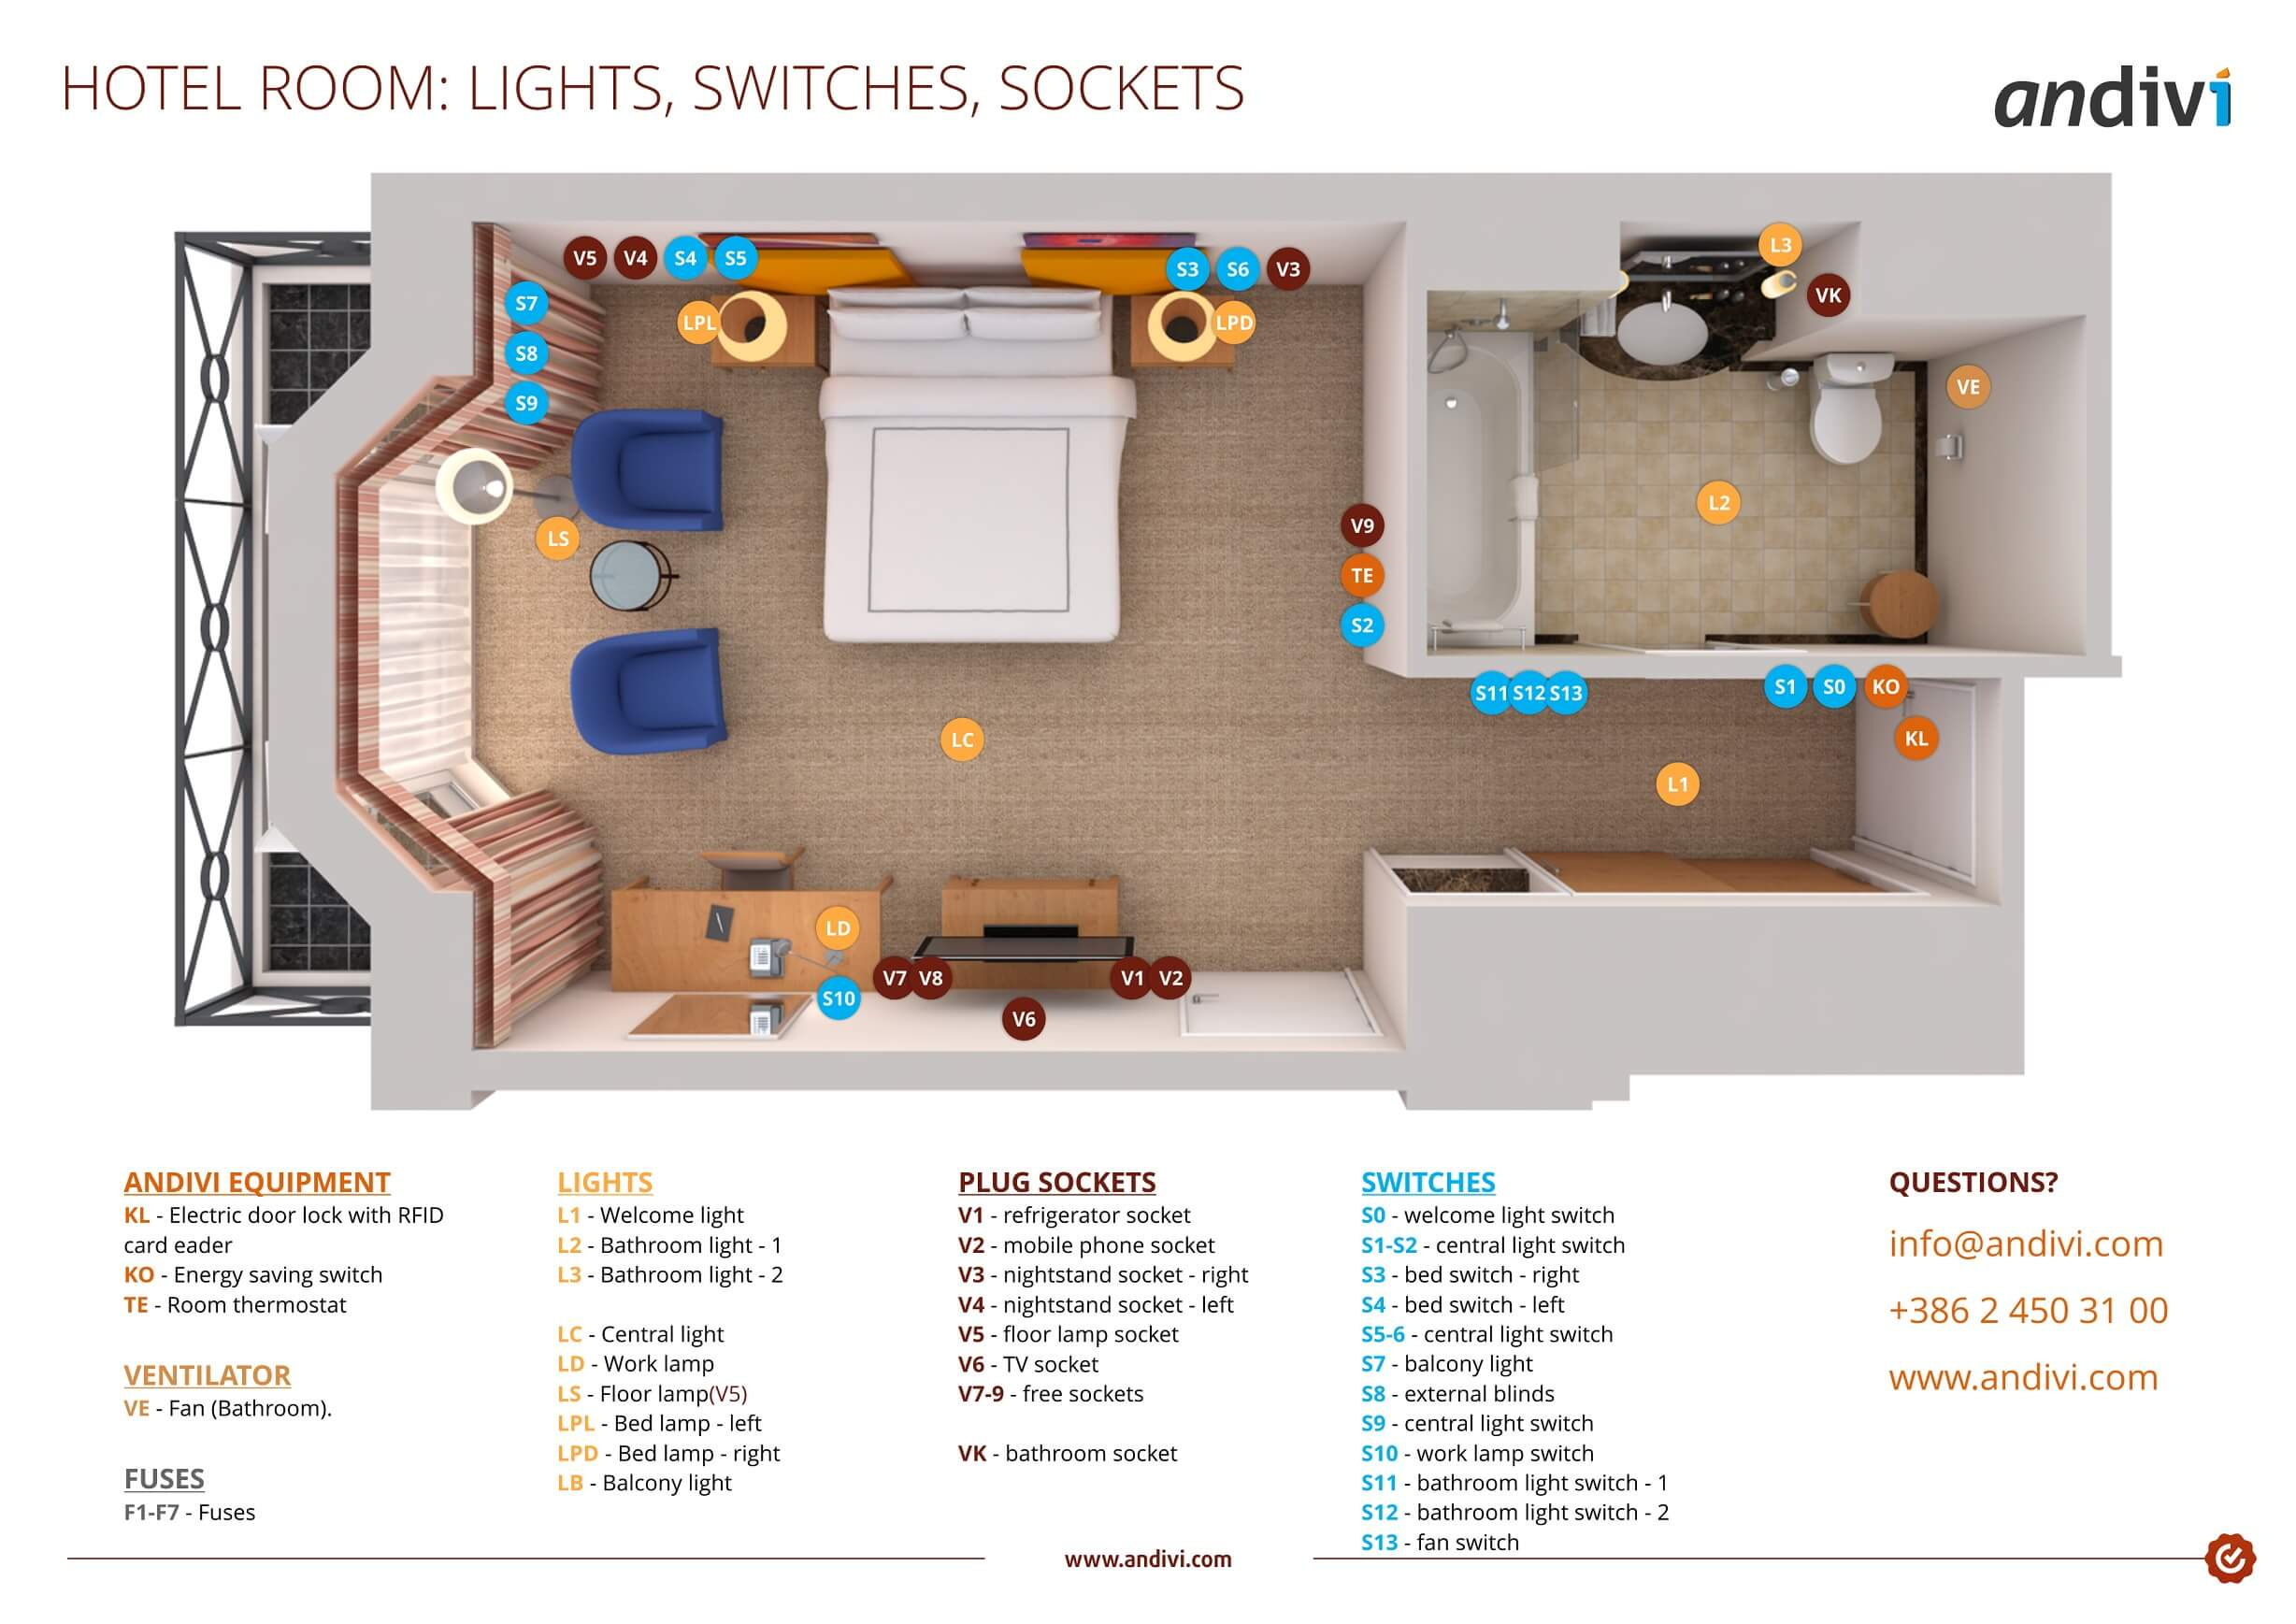 Electrical Installations Layout Plan For A Typical Hotel Basic Home Wiring Circuit Design Installation Room Lights Sockets Switches